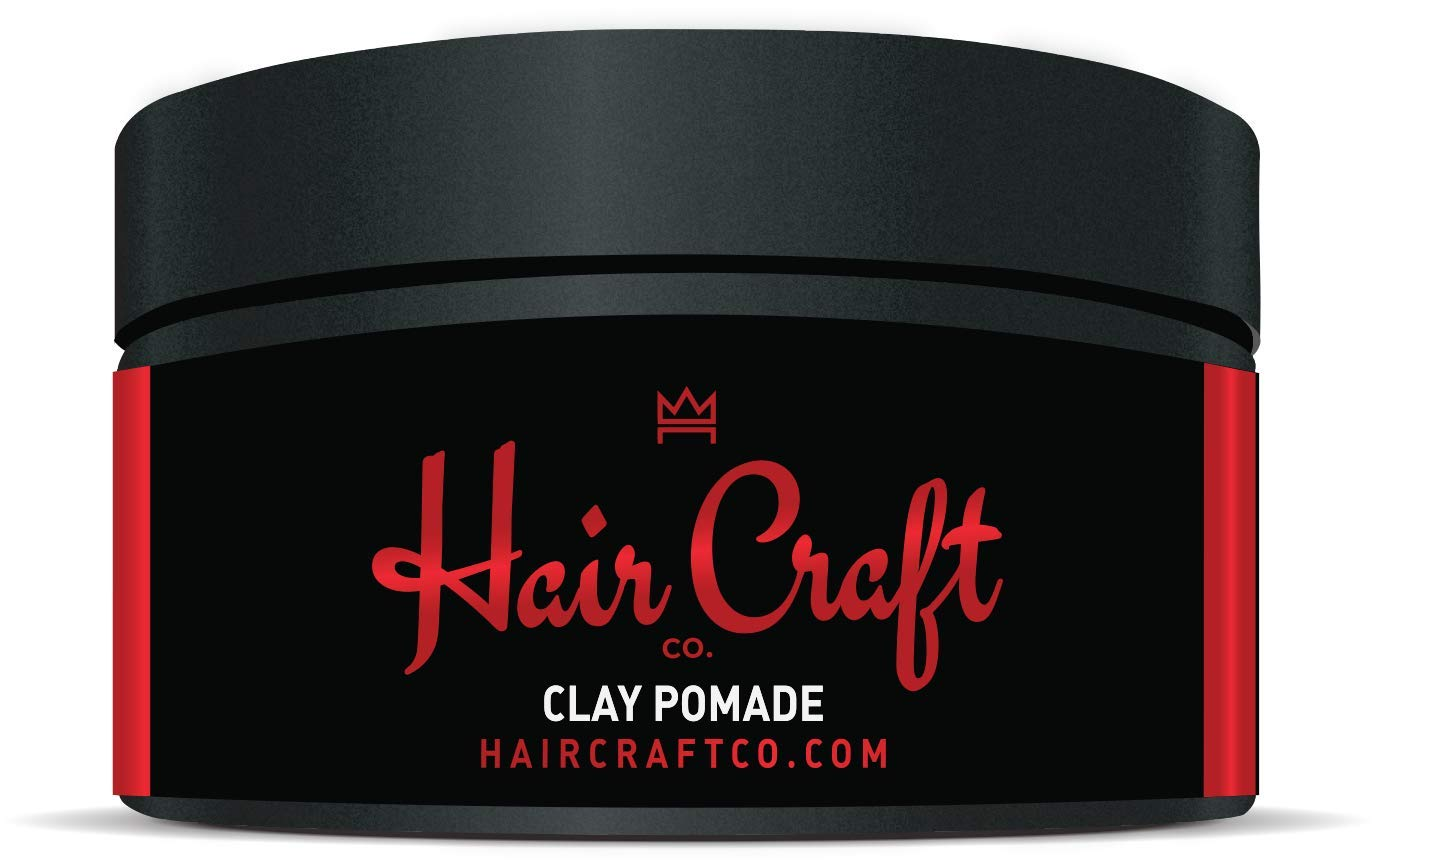 Hair Craft Co. Clay Pomade 3oz - Shine Free Matte Finish - Medium Hold/Natural Look - Best Men's Styling Product, Barber Approved - Ideal for Textured, Thickened & Modern Hairstyles - Unscented by Hair Craft Co.